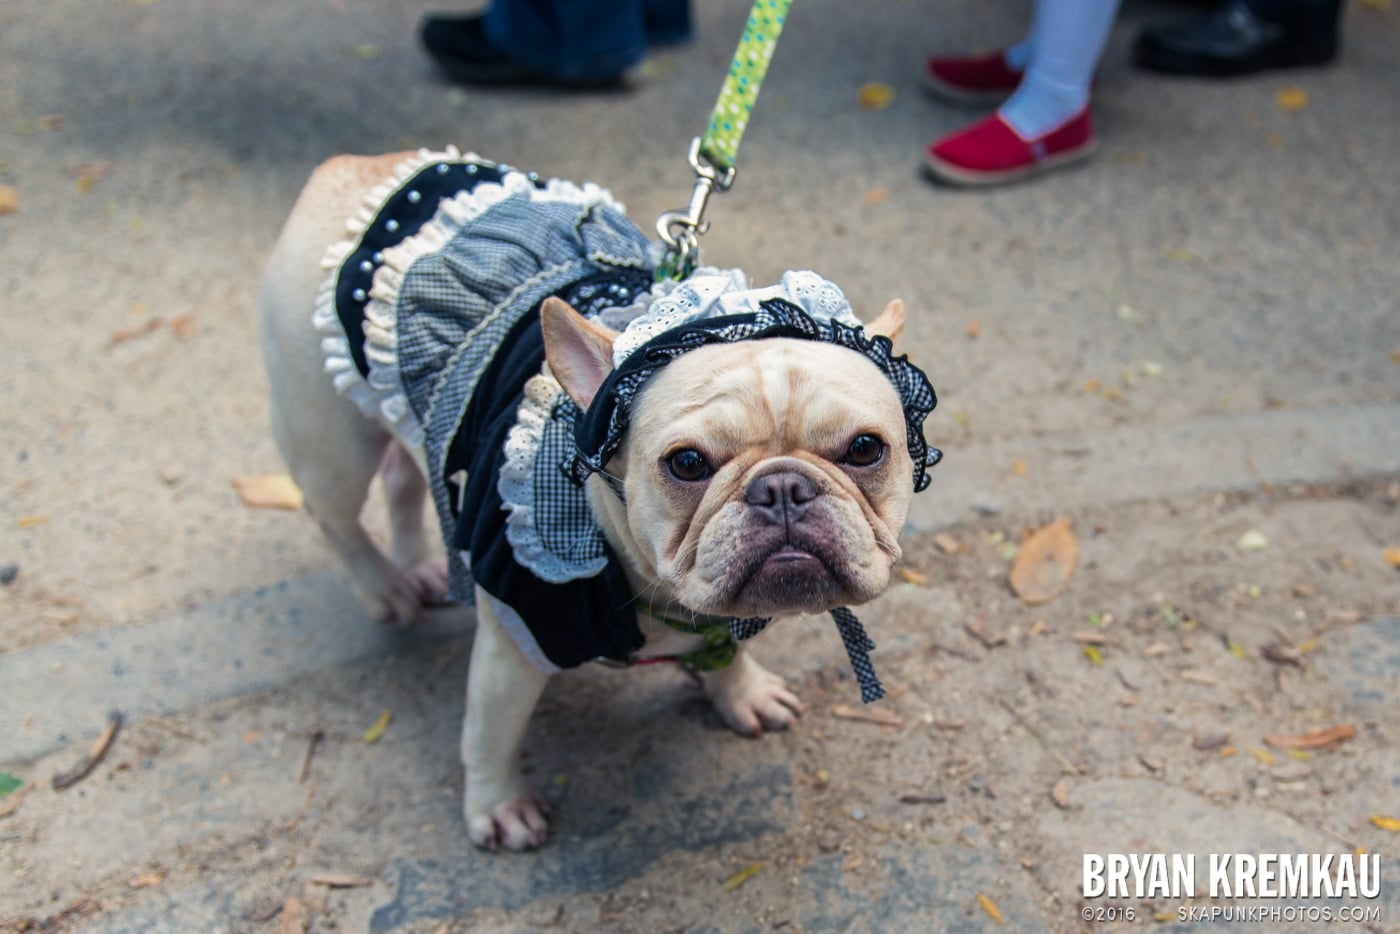 Tompkins Square Halloween Dog Parade 2013 @ Tompkins Square Park, NYC - 10.26.13 (36)